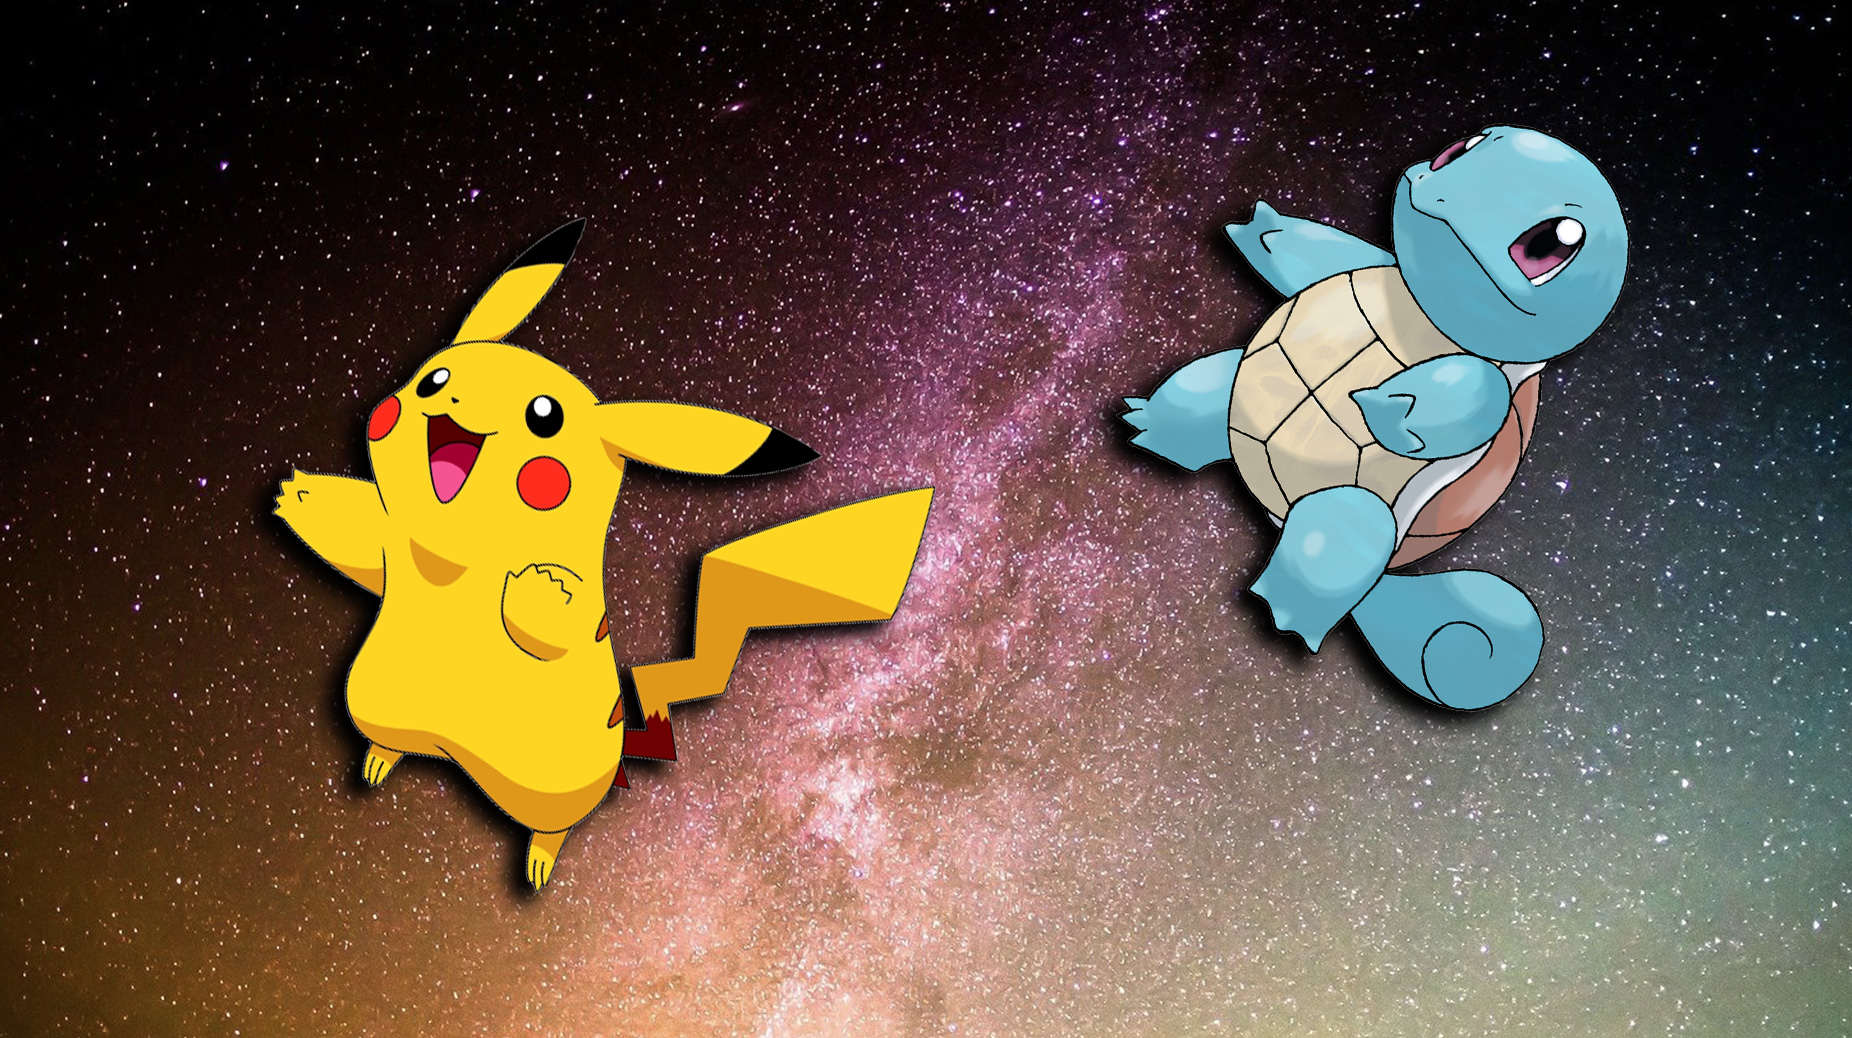 Screenshot of Pokemon Pikachu and Squritle flying in space.